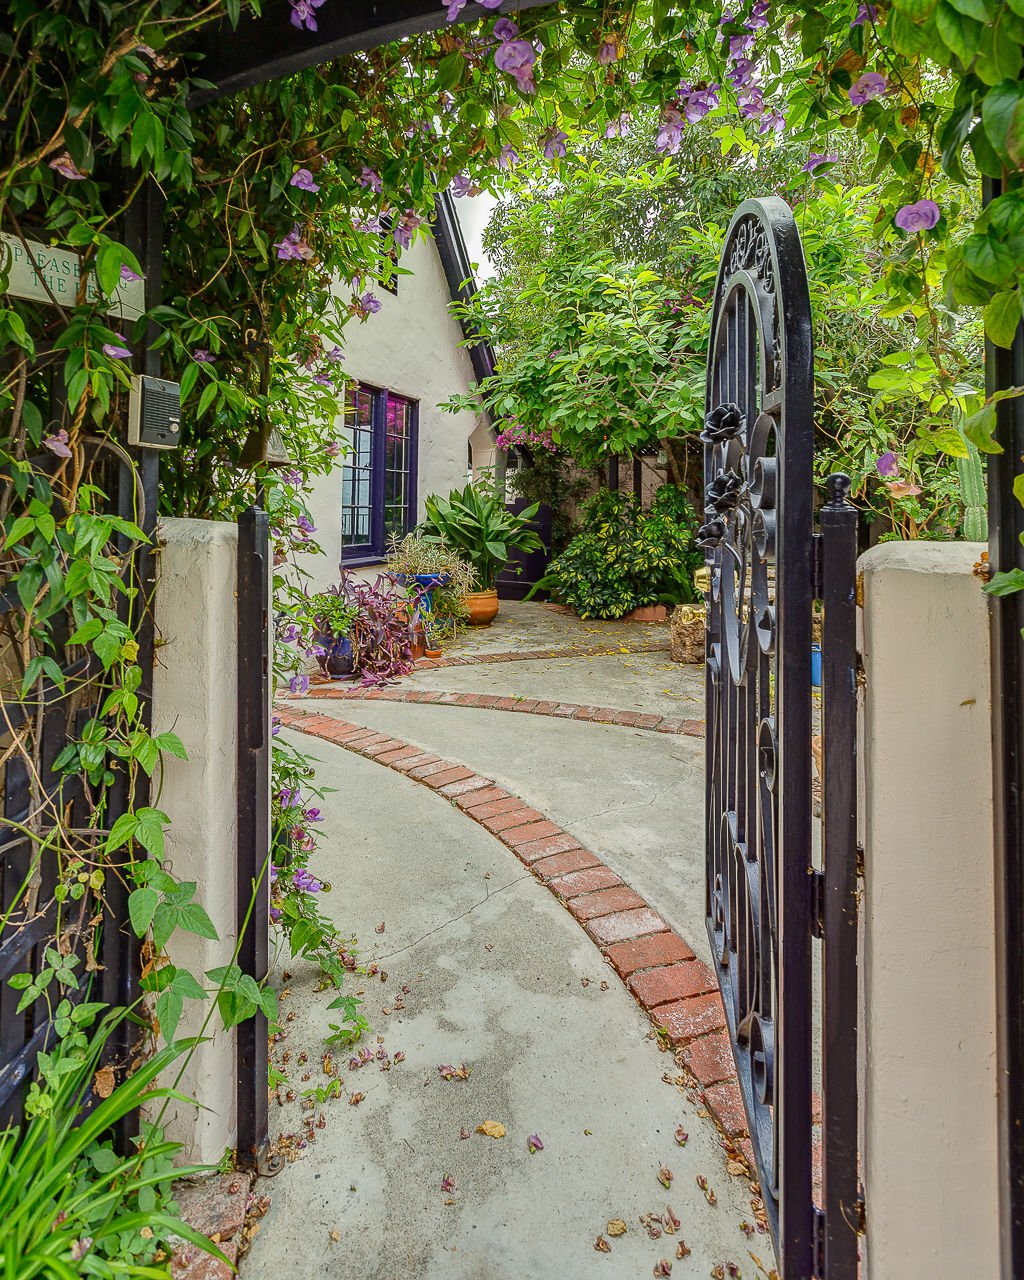 Charming Storybook home designed by famed architect! image 1